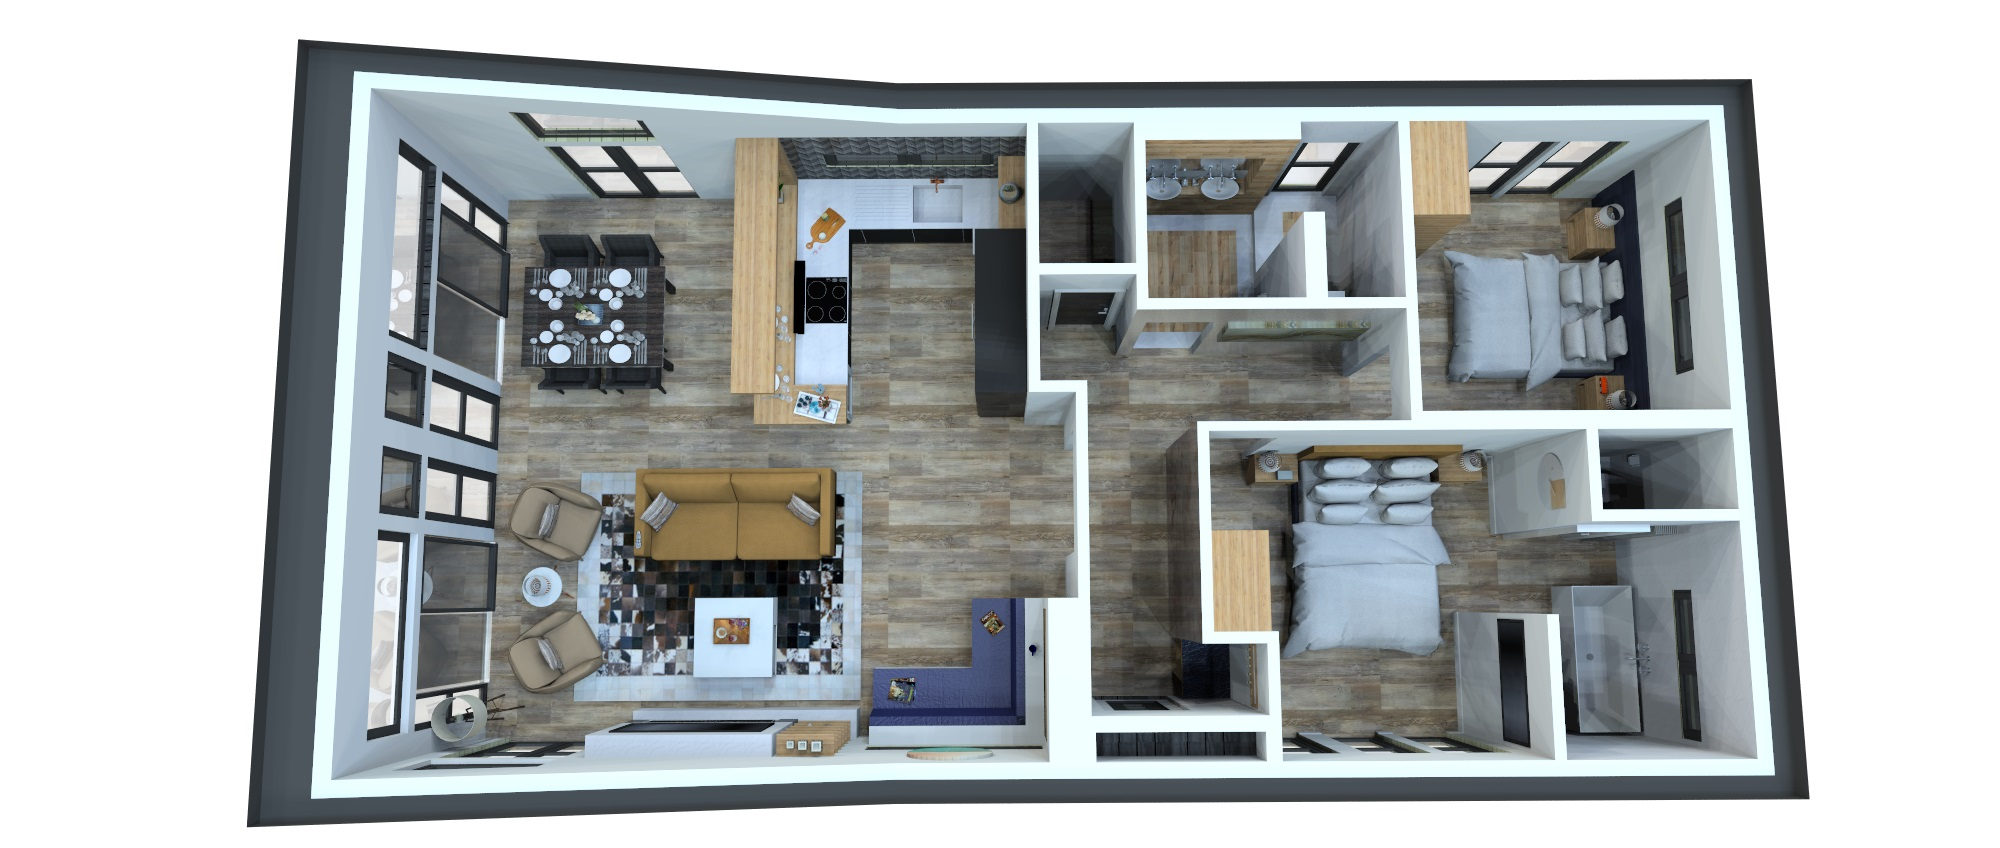 Copy of Internal bird's-eye view showcasing open-plan living in a high-end holiday home